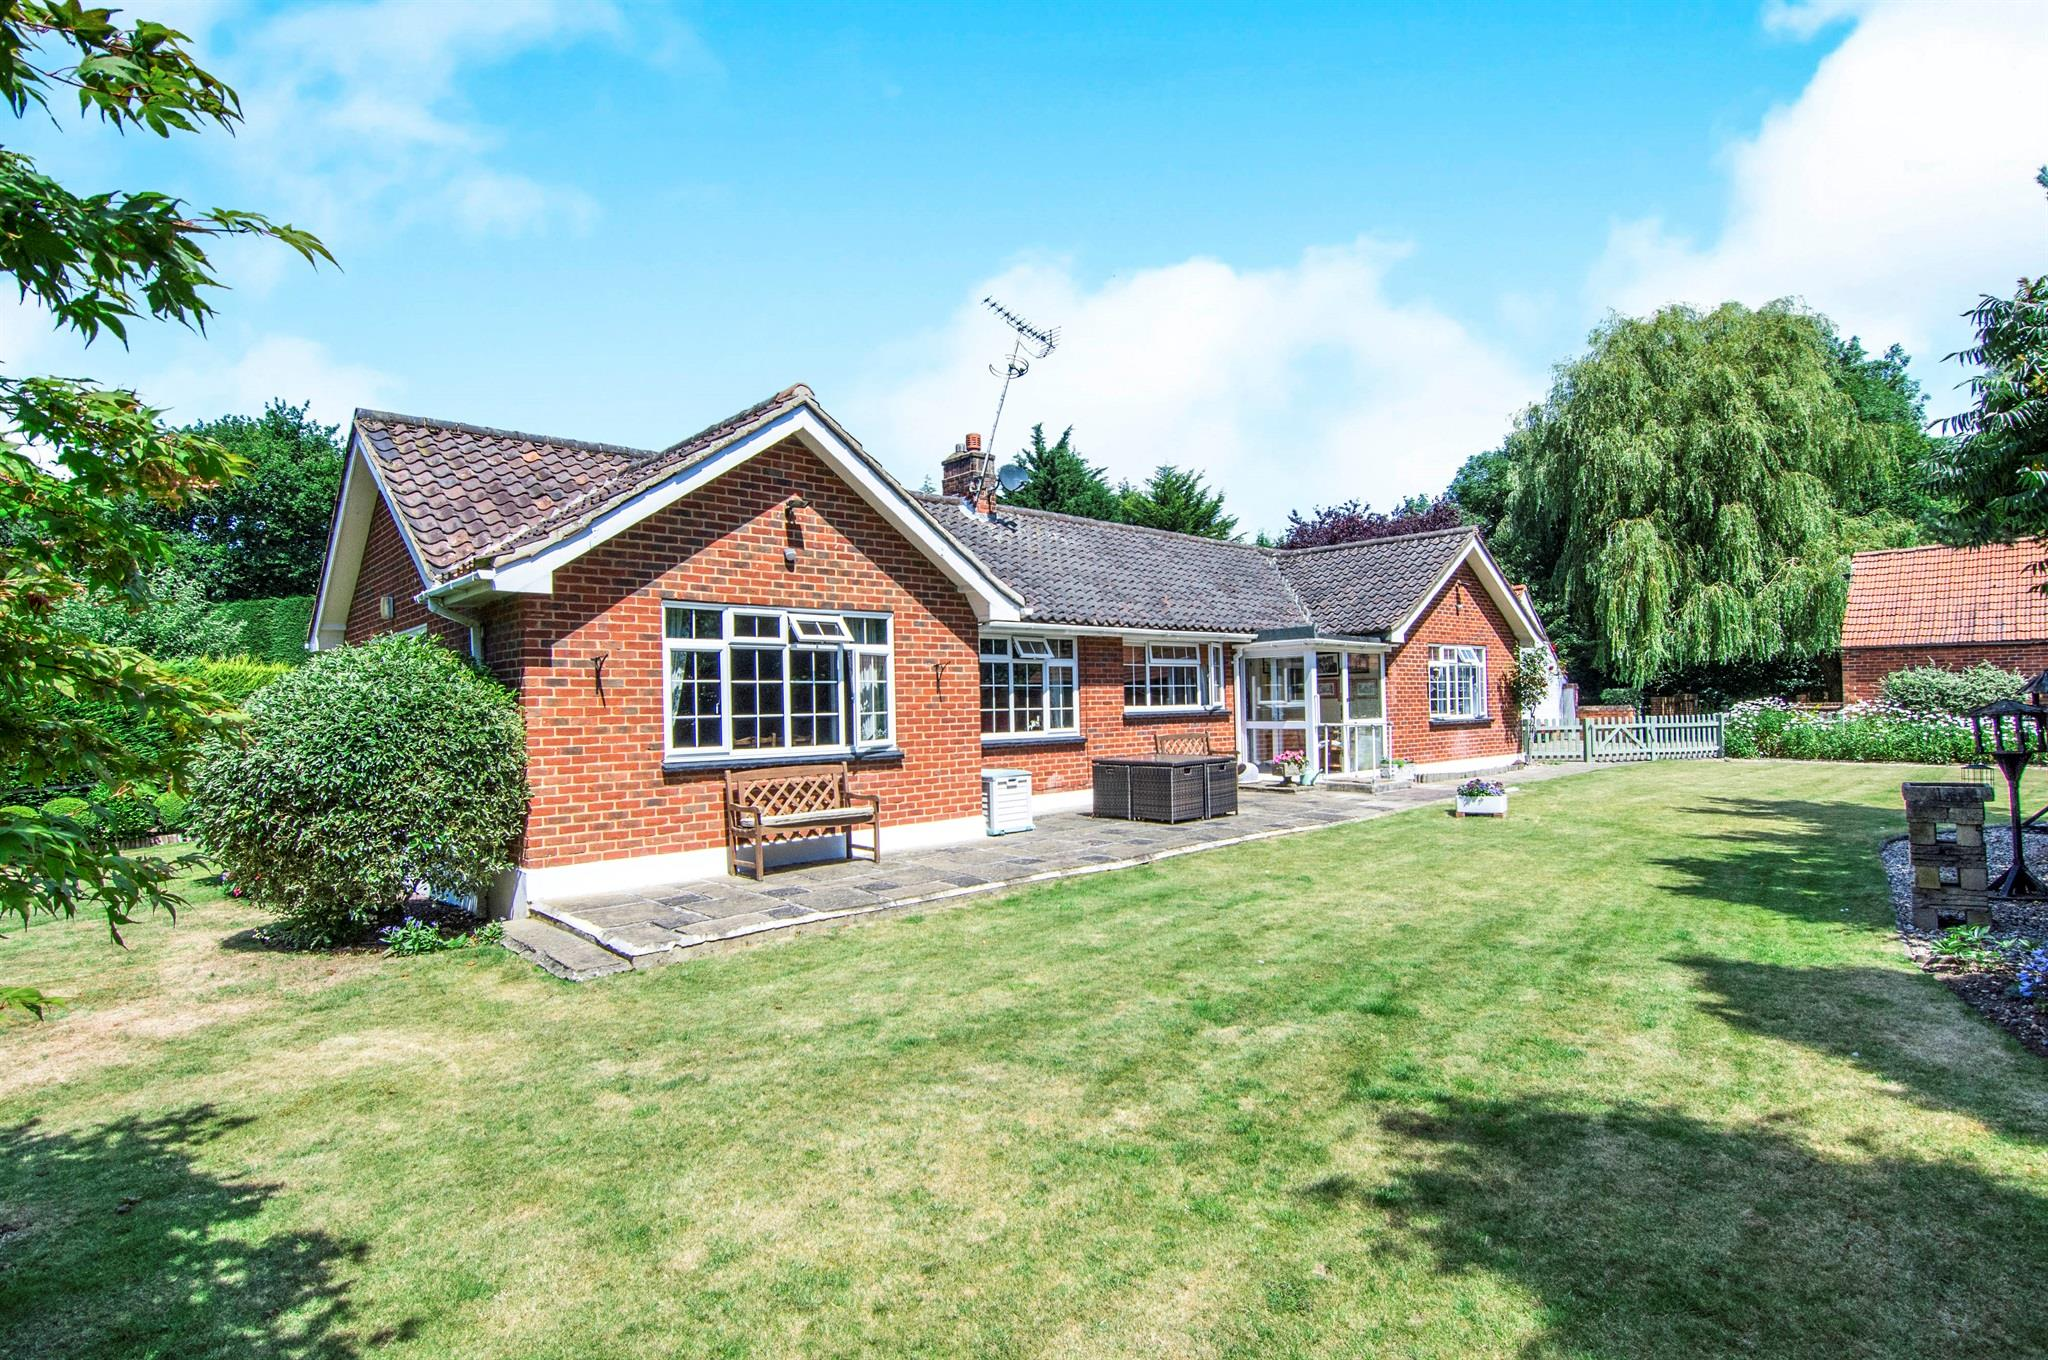 3 Bedroom Detached Bungalow For Sale Elmfield Cottage New Road Ingatestone Cm4 0hh